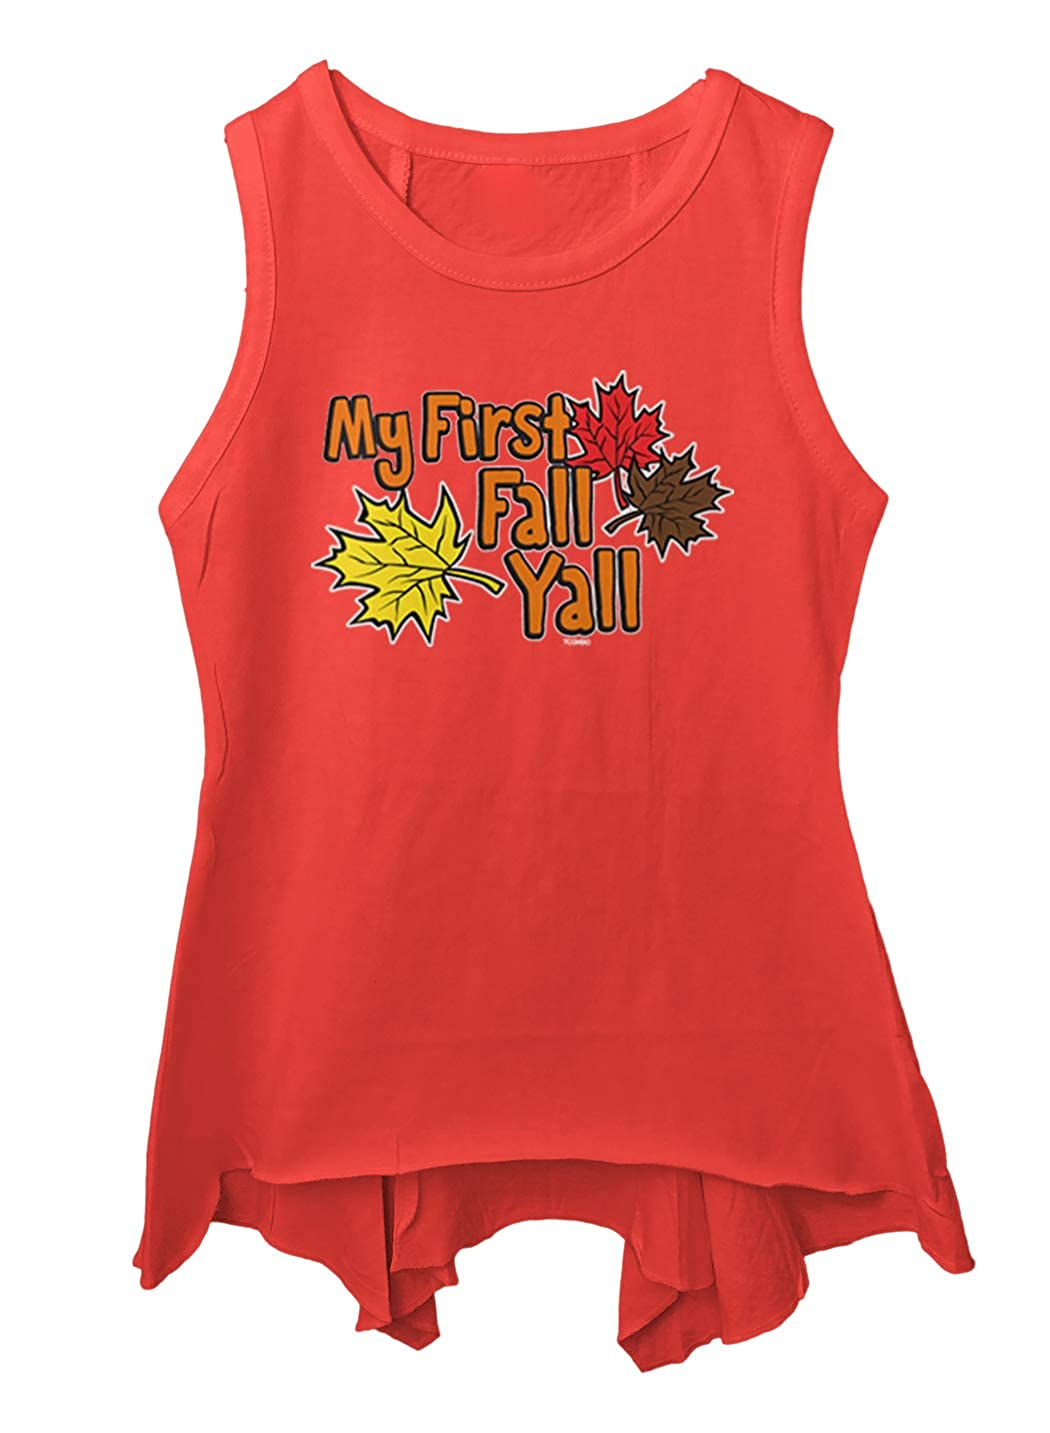 Autumn Leaves Toddler//Youth Sleeveless Backswing Tcombo My First Fall Yall